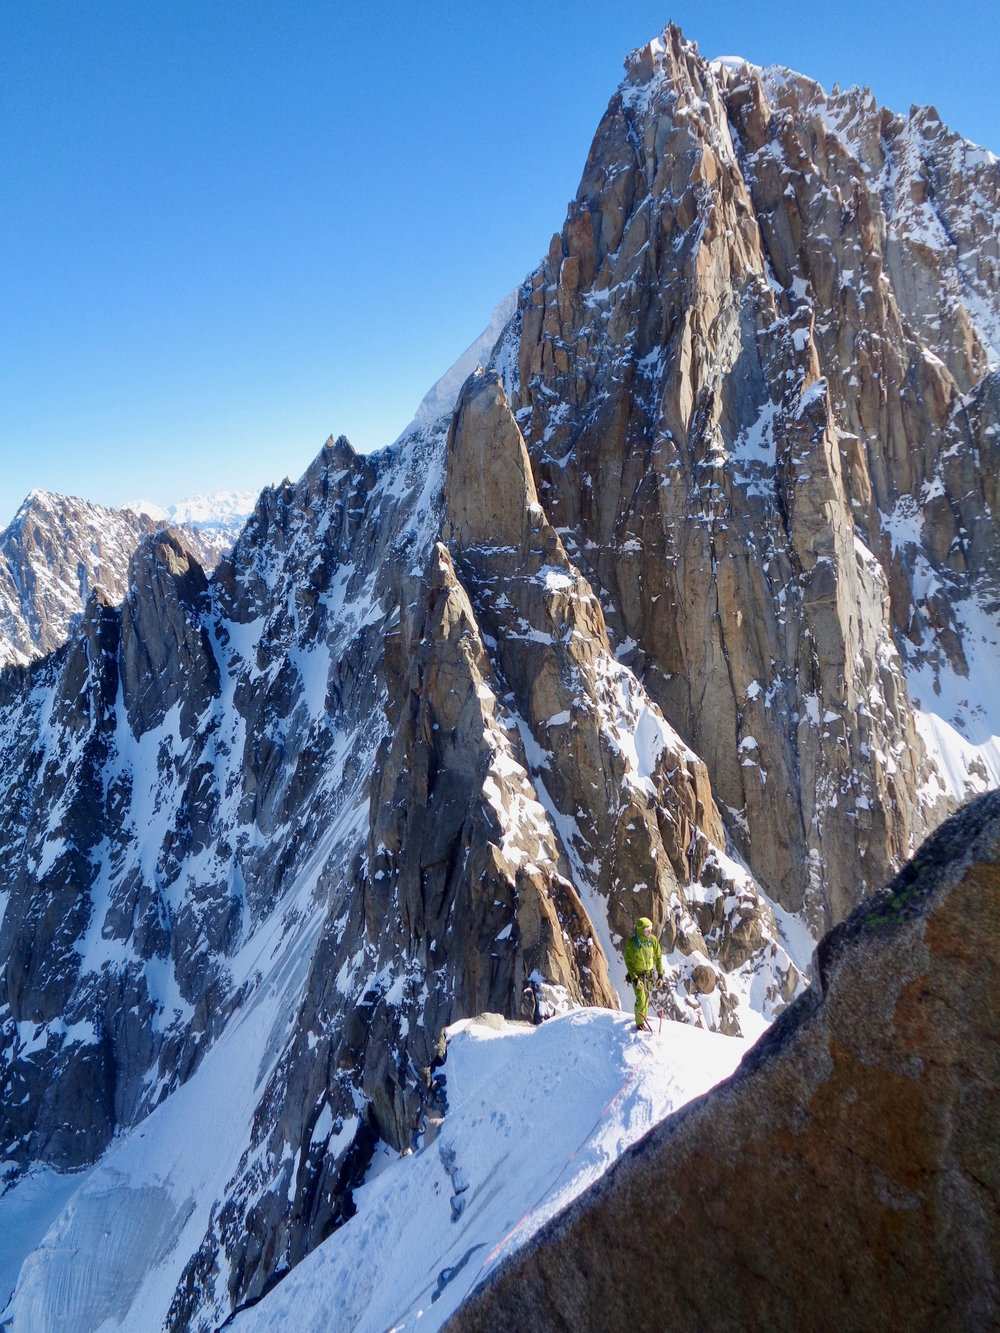 summit ridge of Le grand dru. chamonix. Photo: kim ladiges